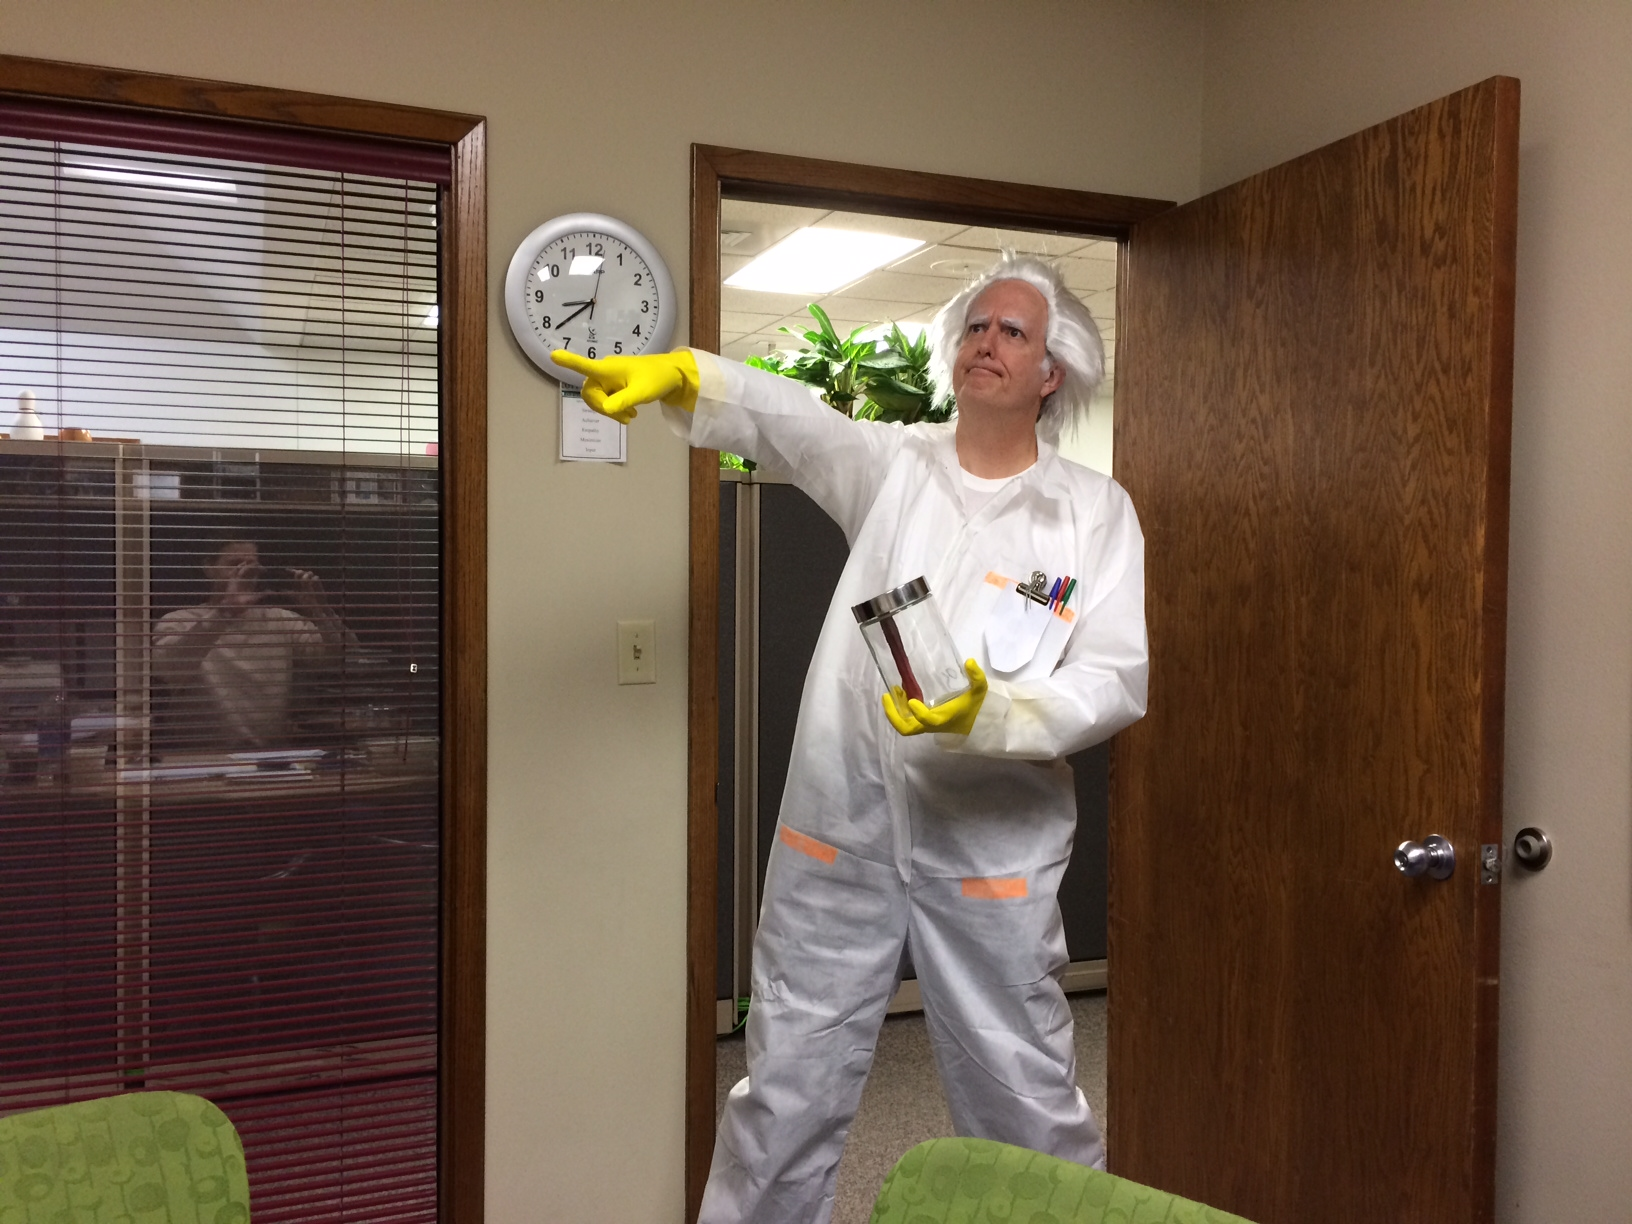 inside our halloween costume potluck party | star 102.5